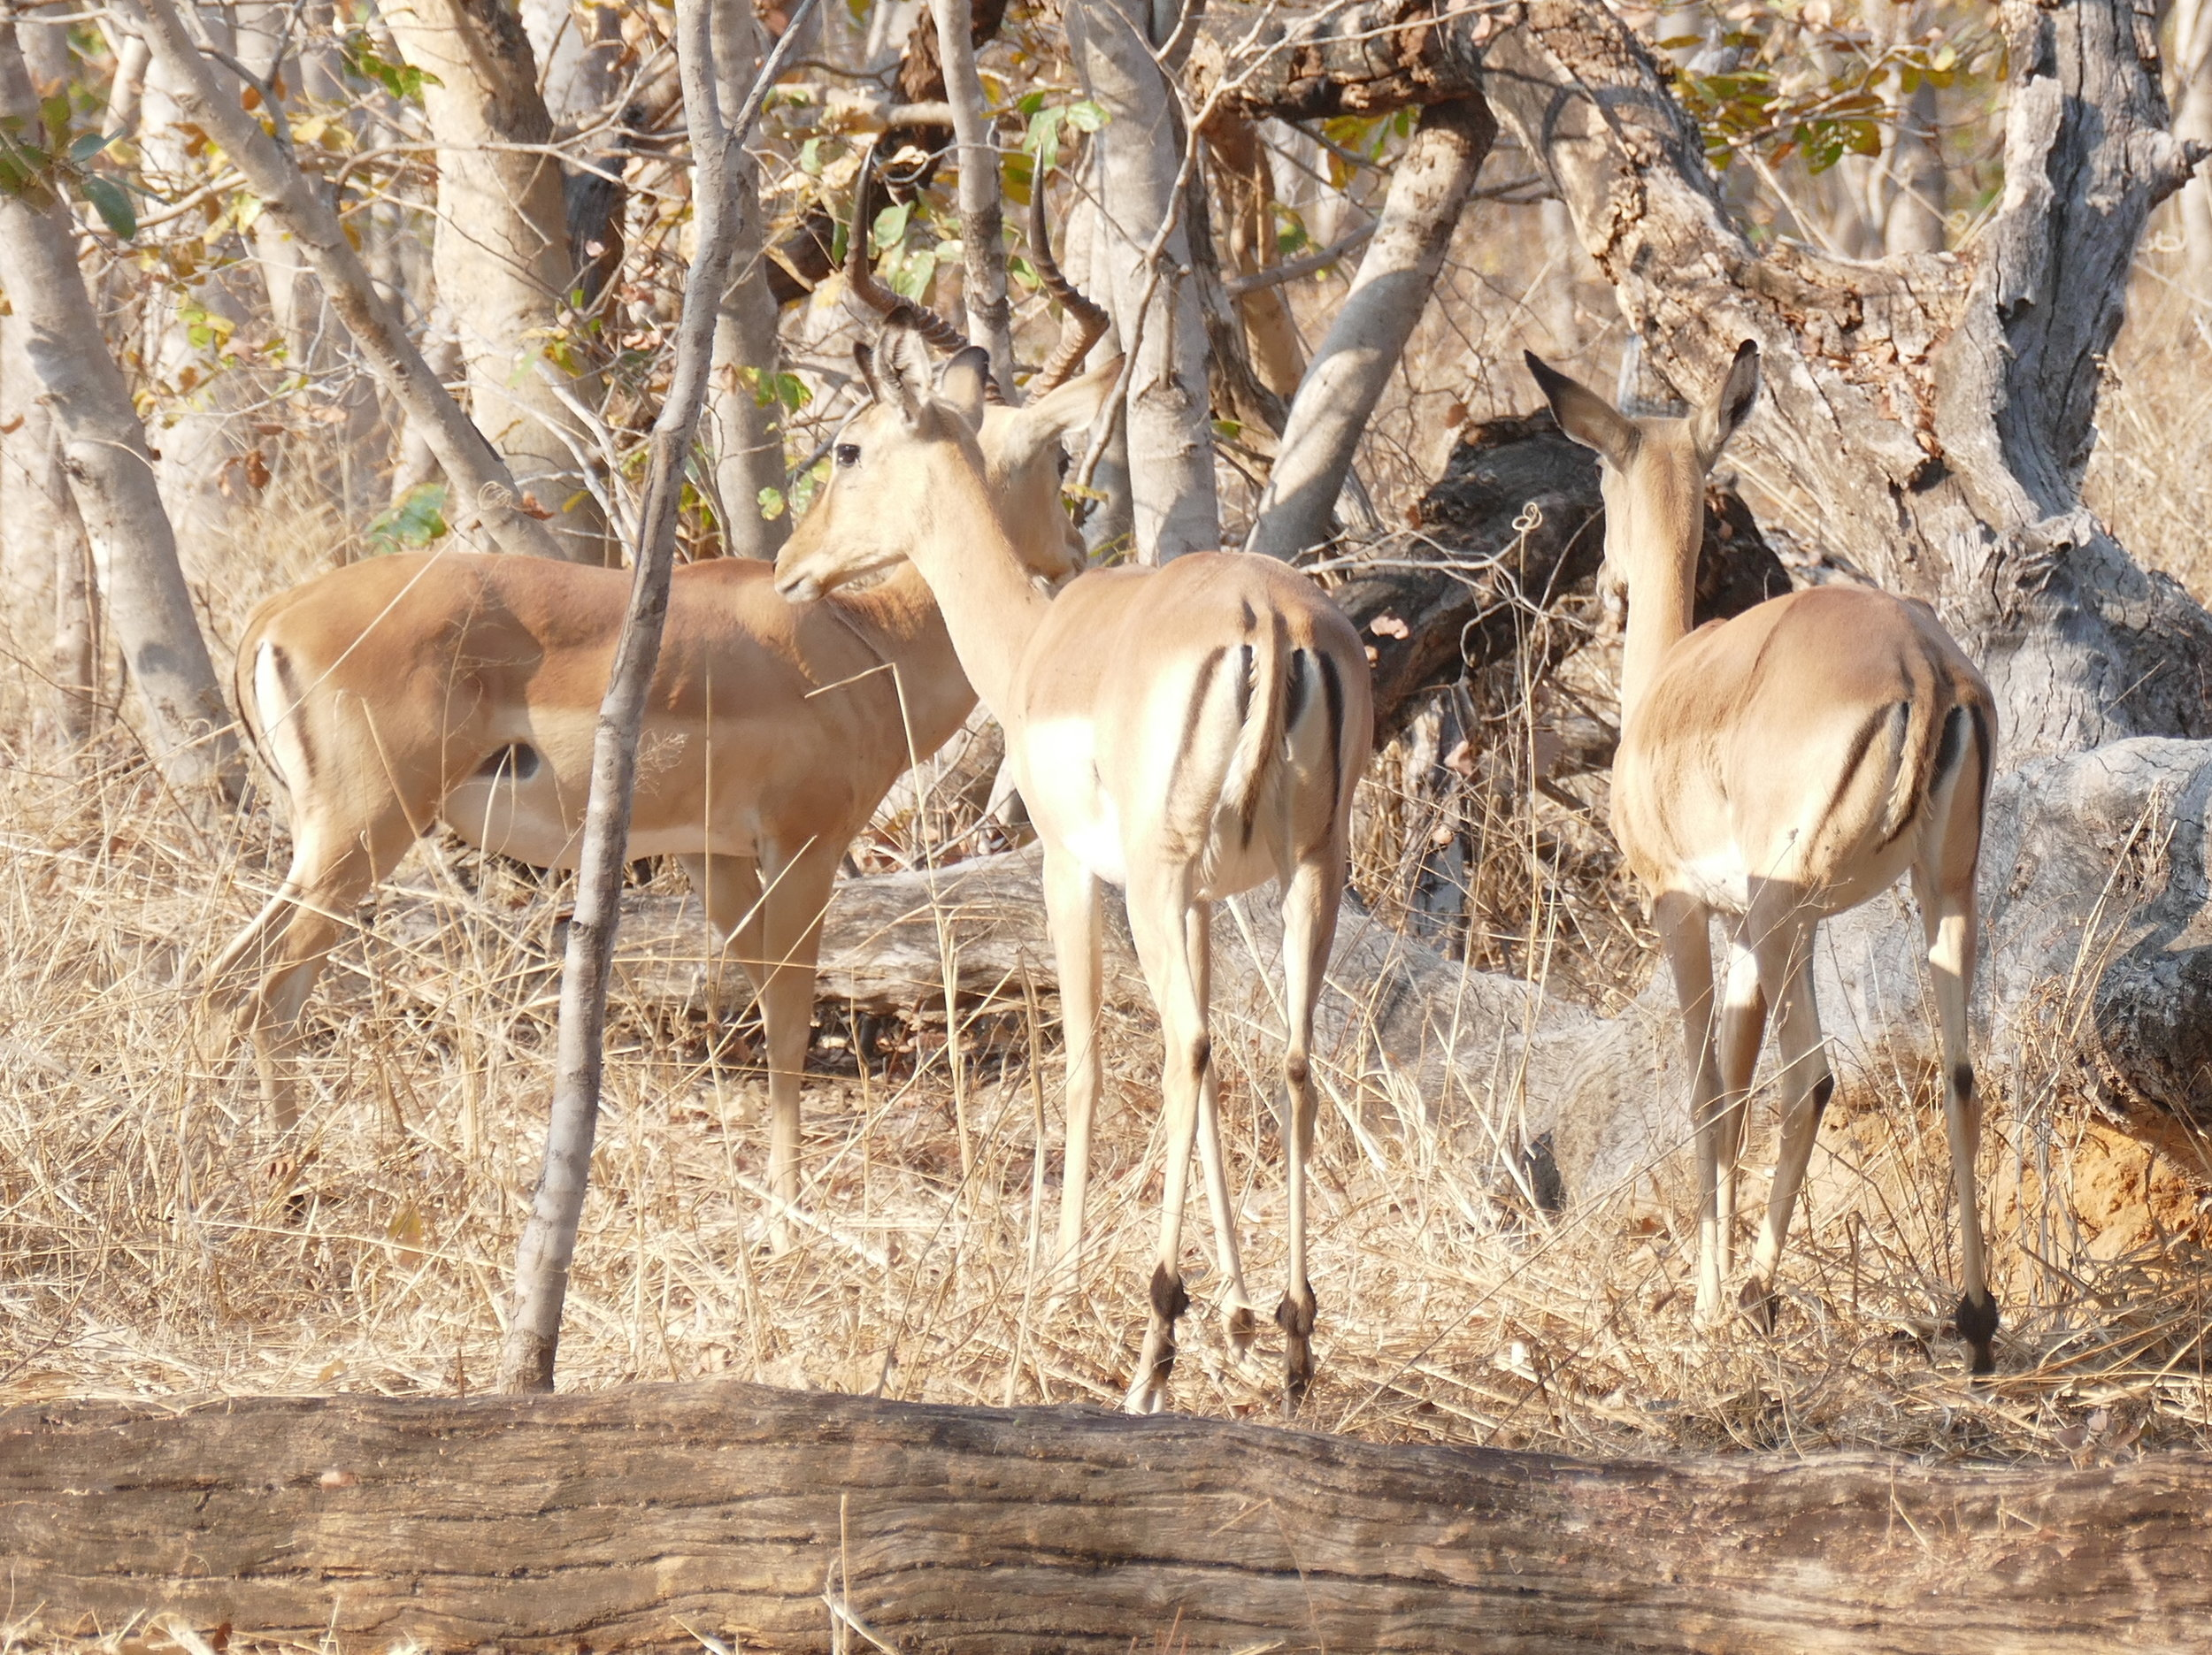 Impalas, painted dogs favourite food